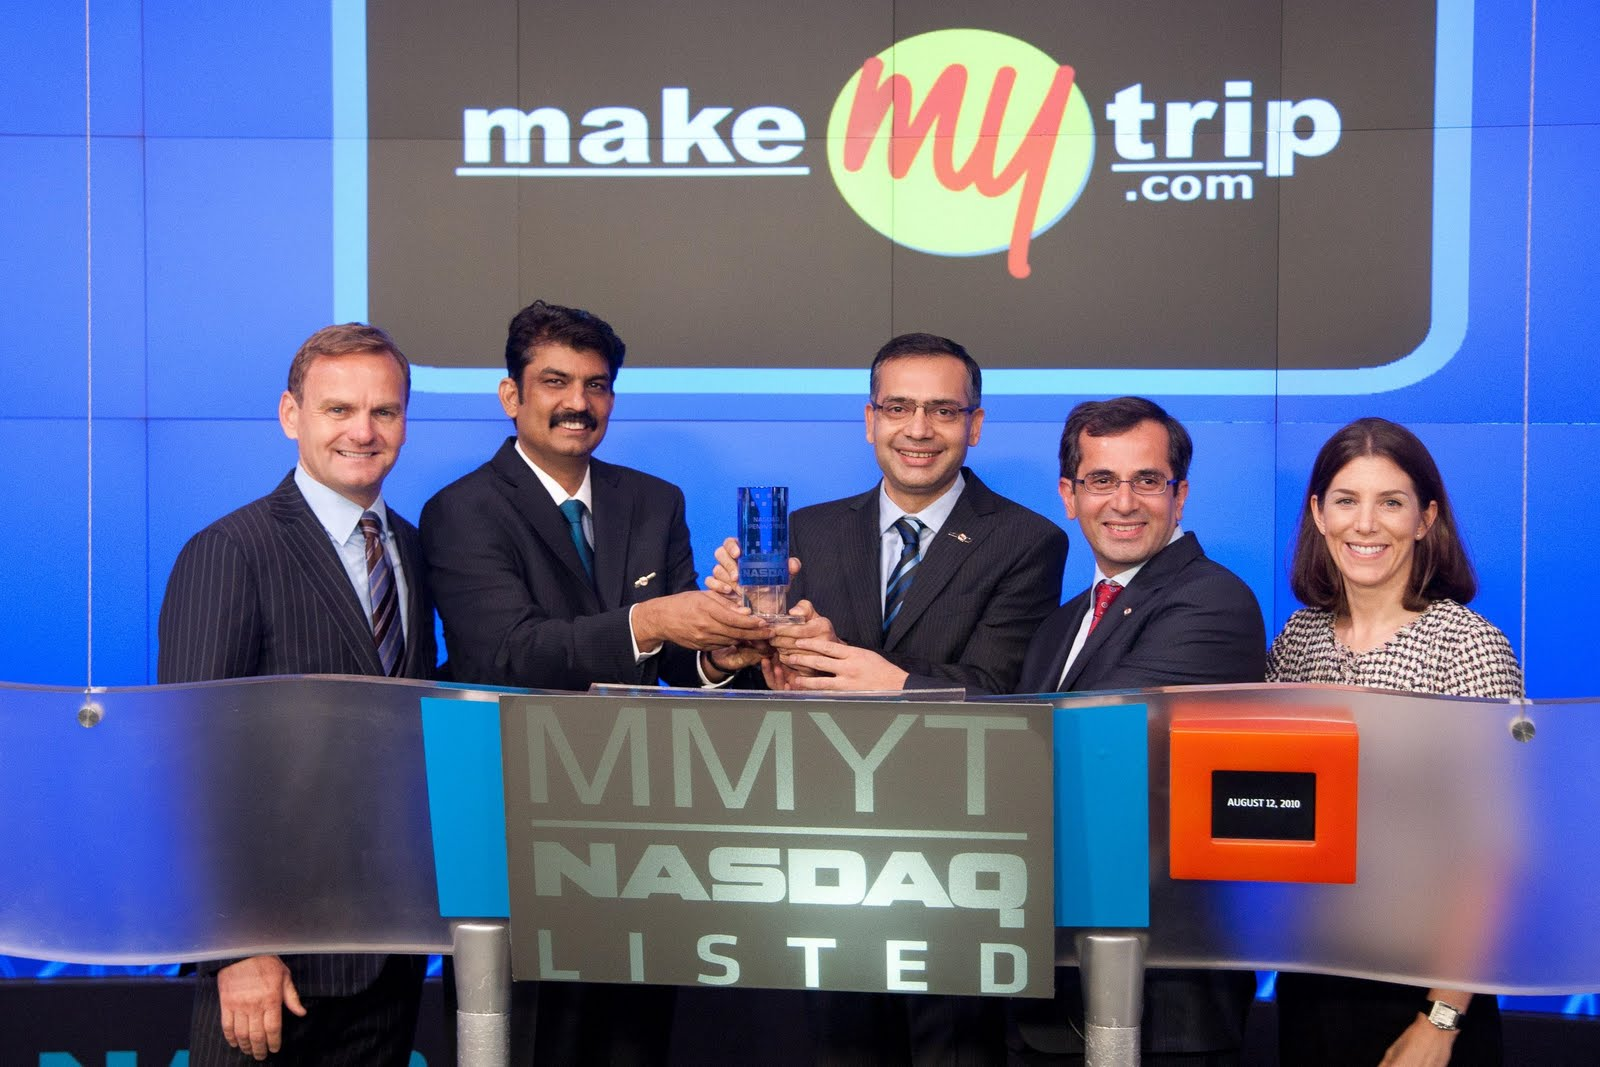 Indian News Service -Blog: MAKE MY TRIP LTD.LISTED ON NASDAQ